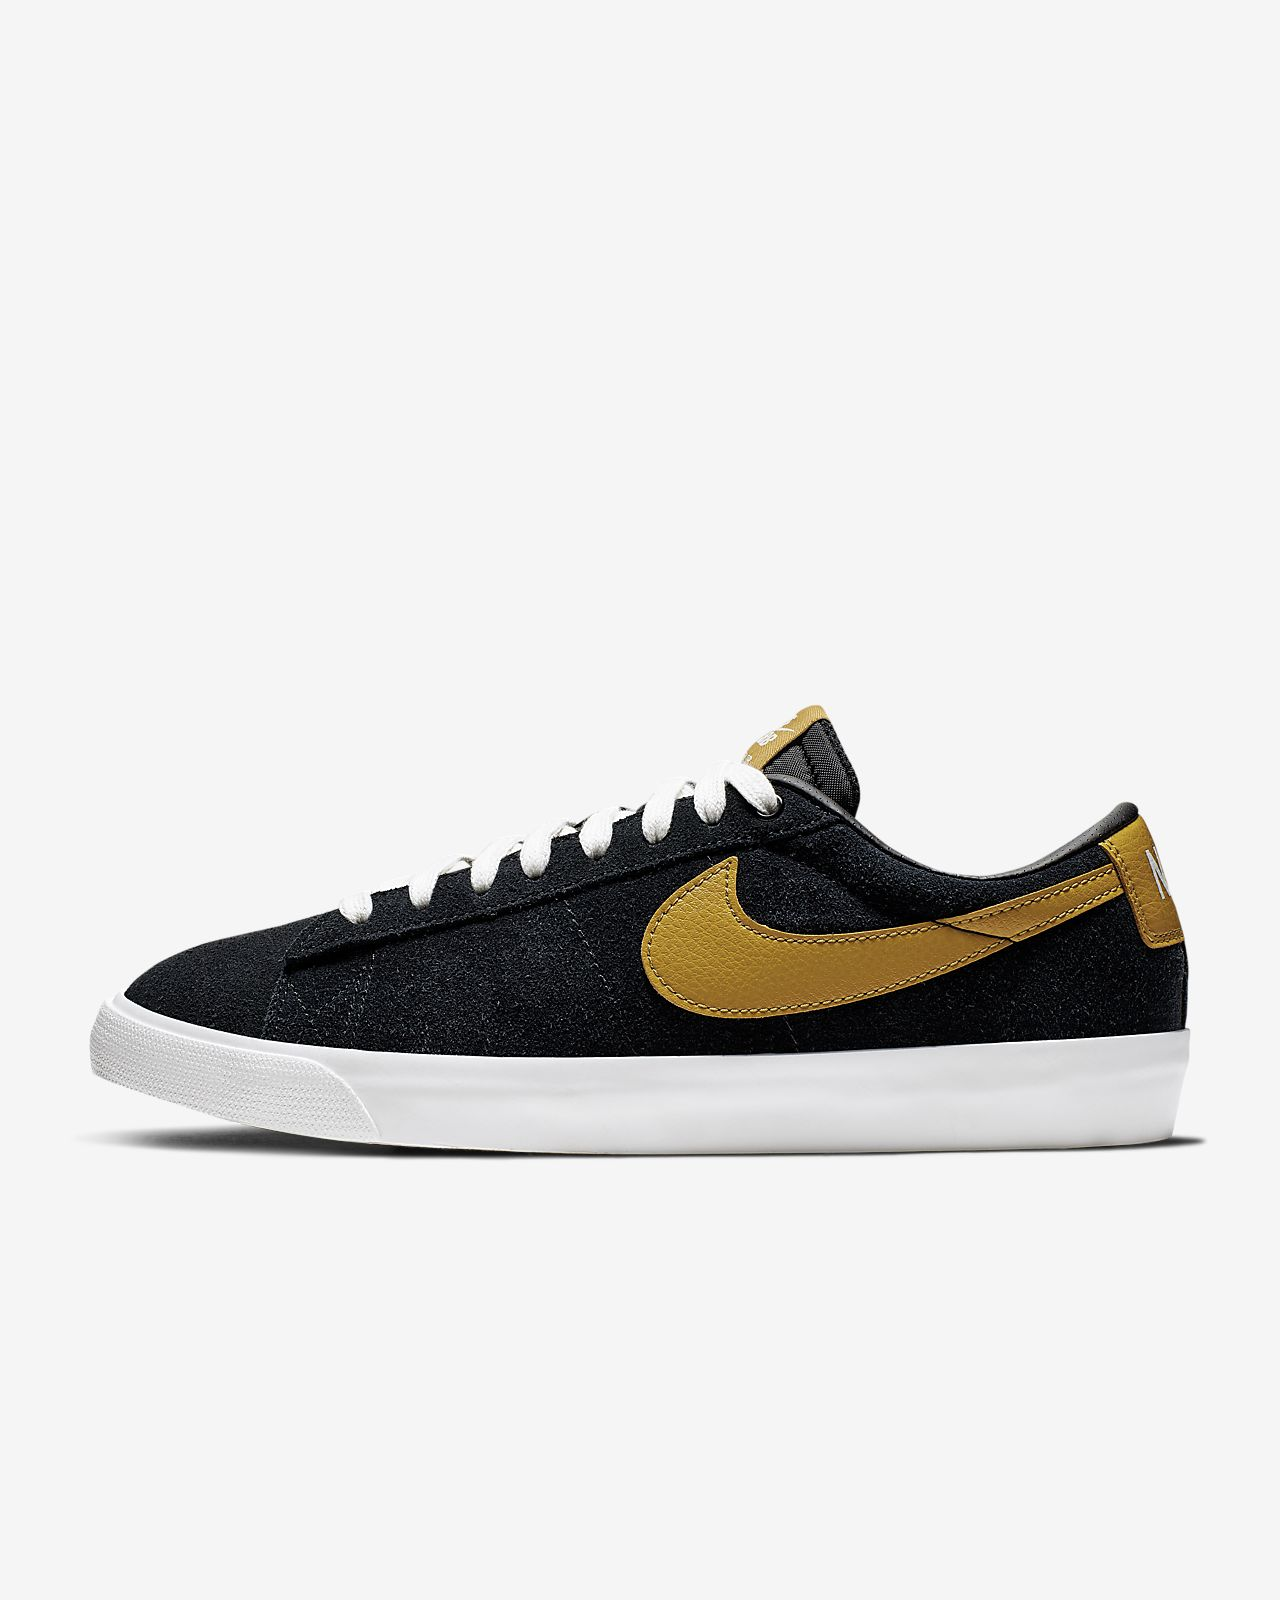 premium selection 82b5b 7c598 Nike SB Blazer Low GT Skate Shoe